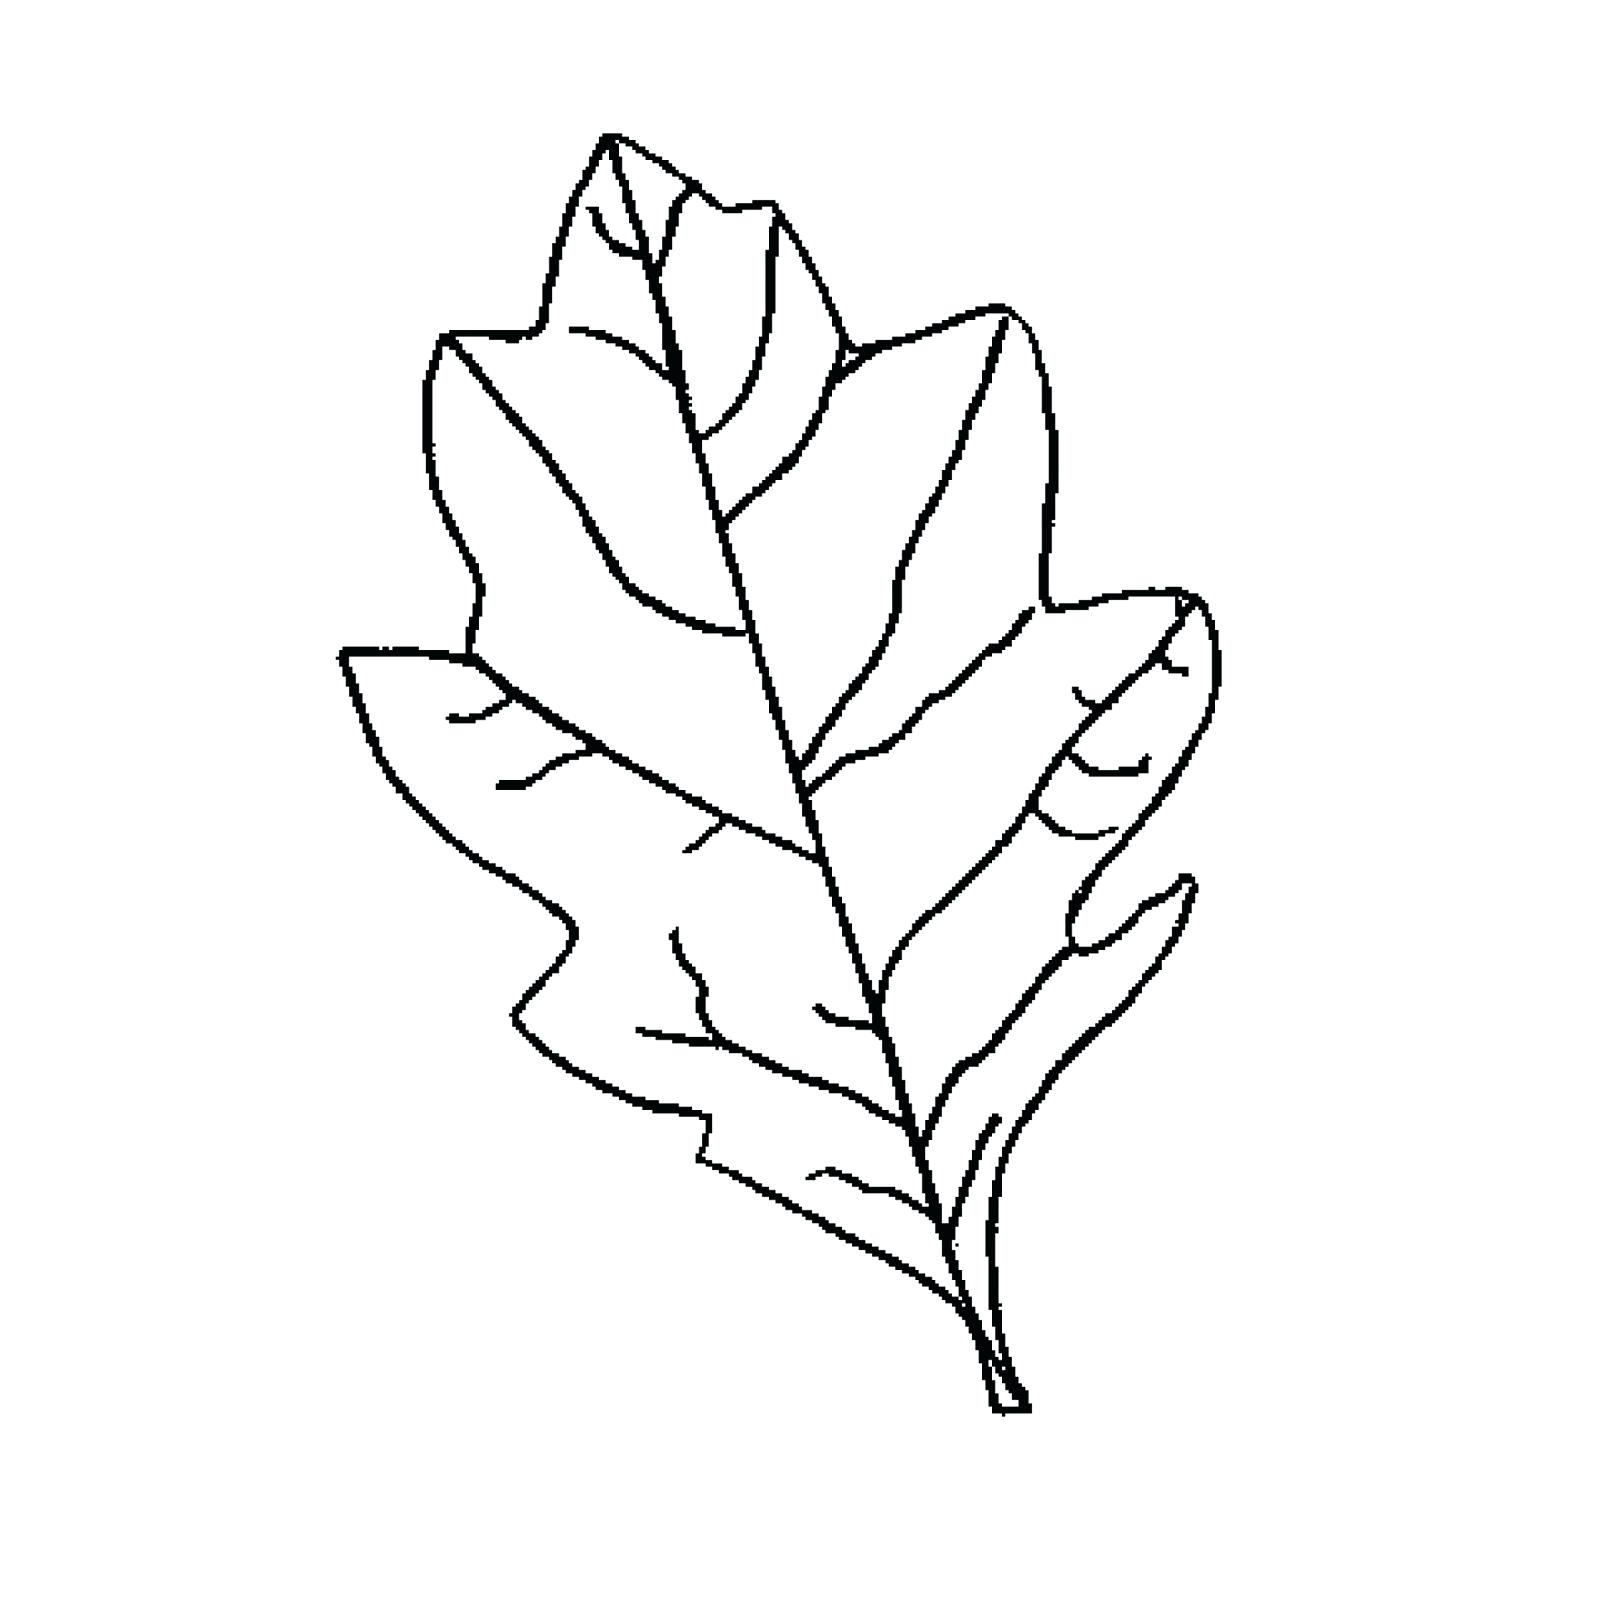 1600x1600 Leaf Template With Writing Lines Oak Leaf Template